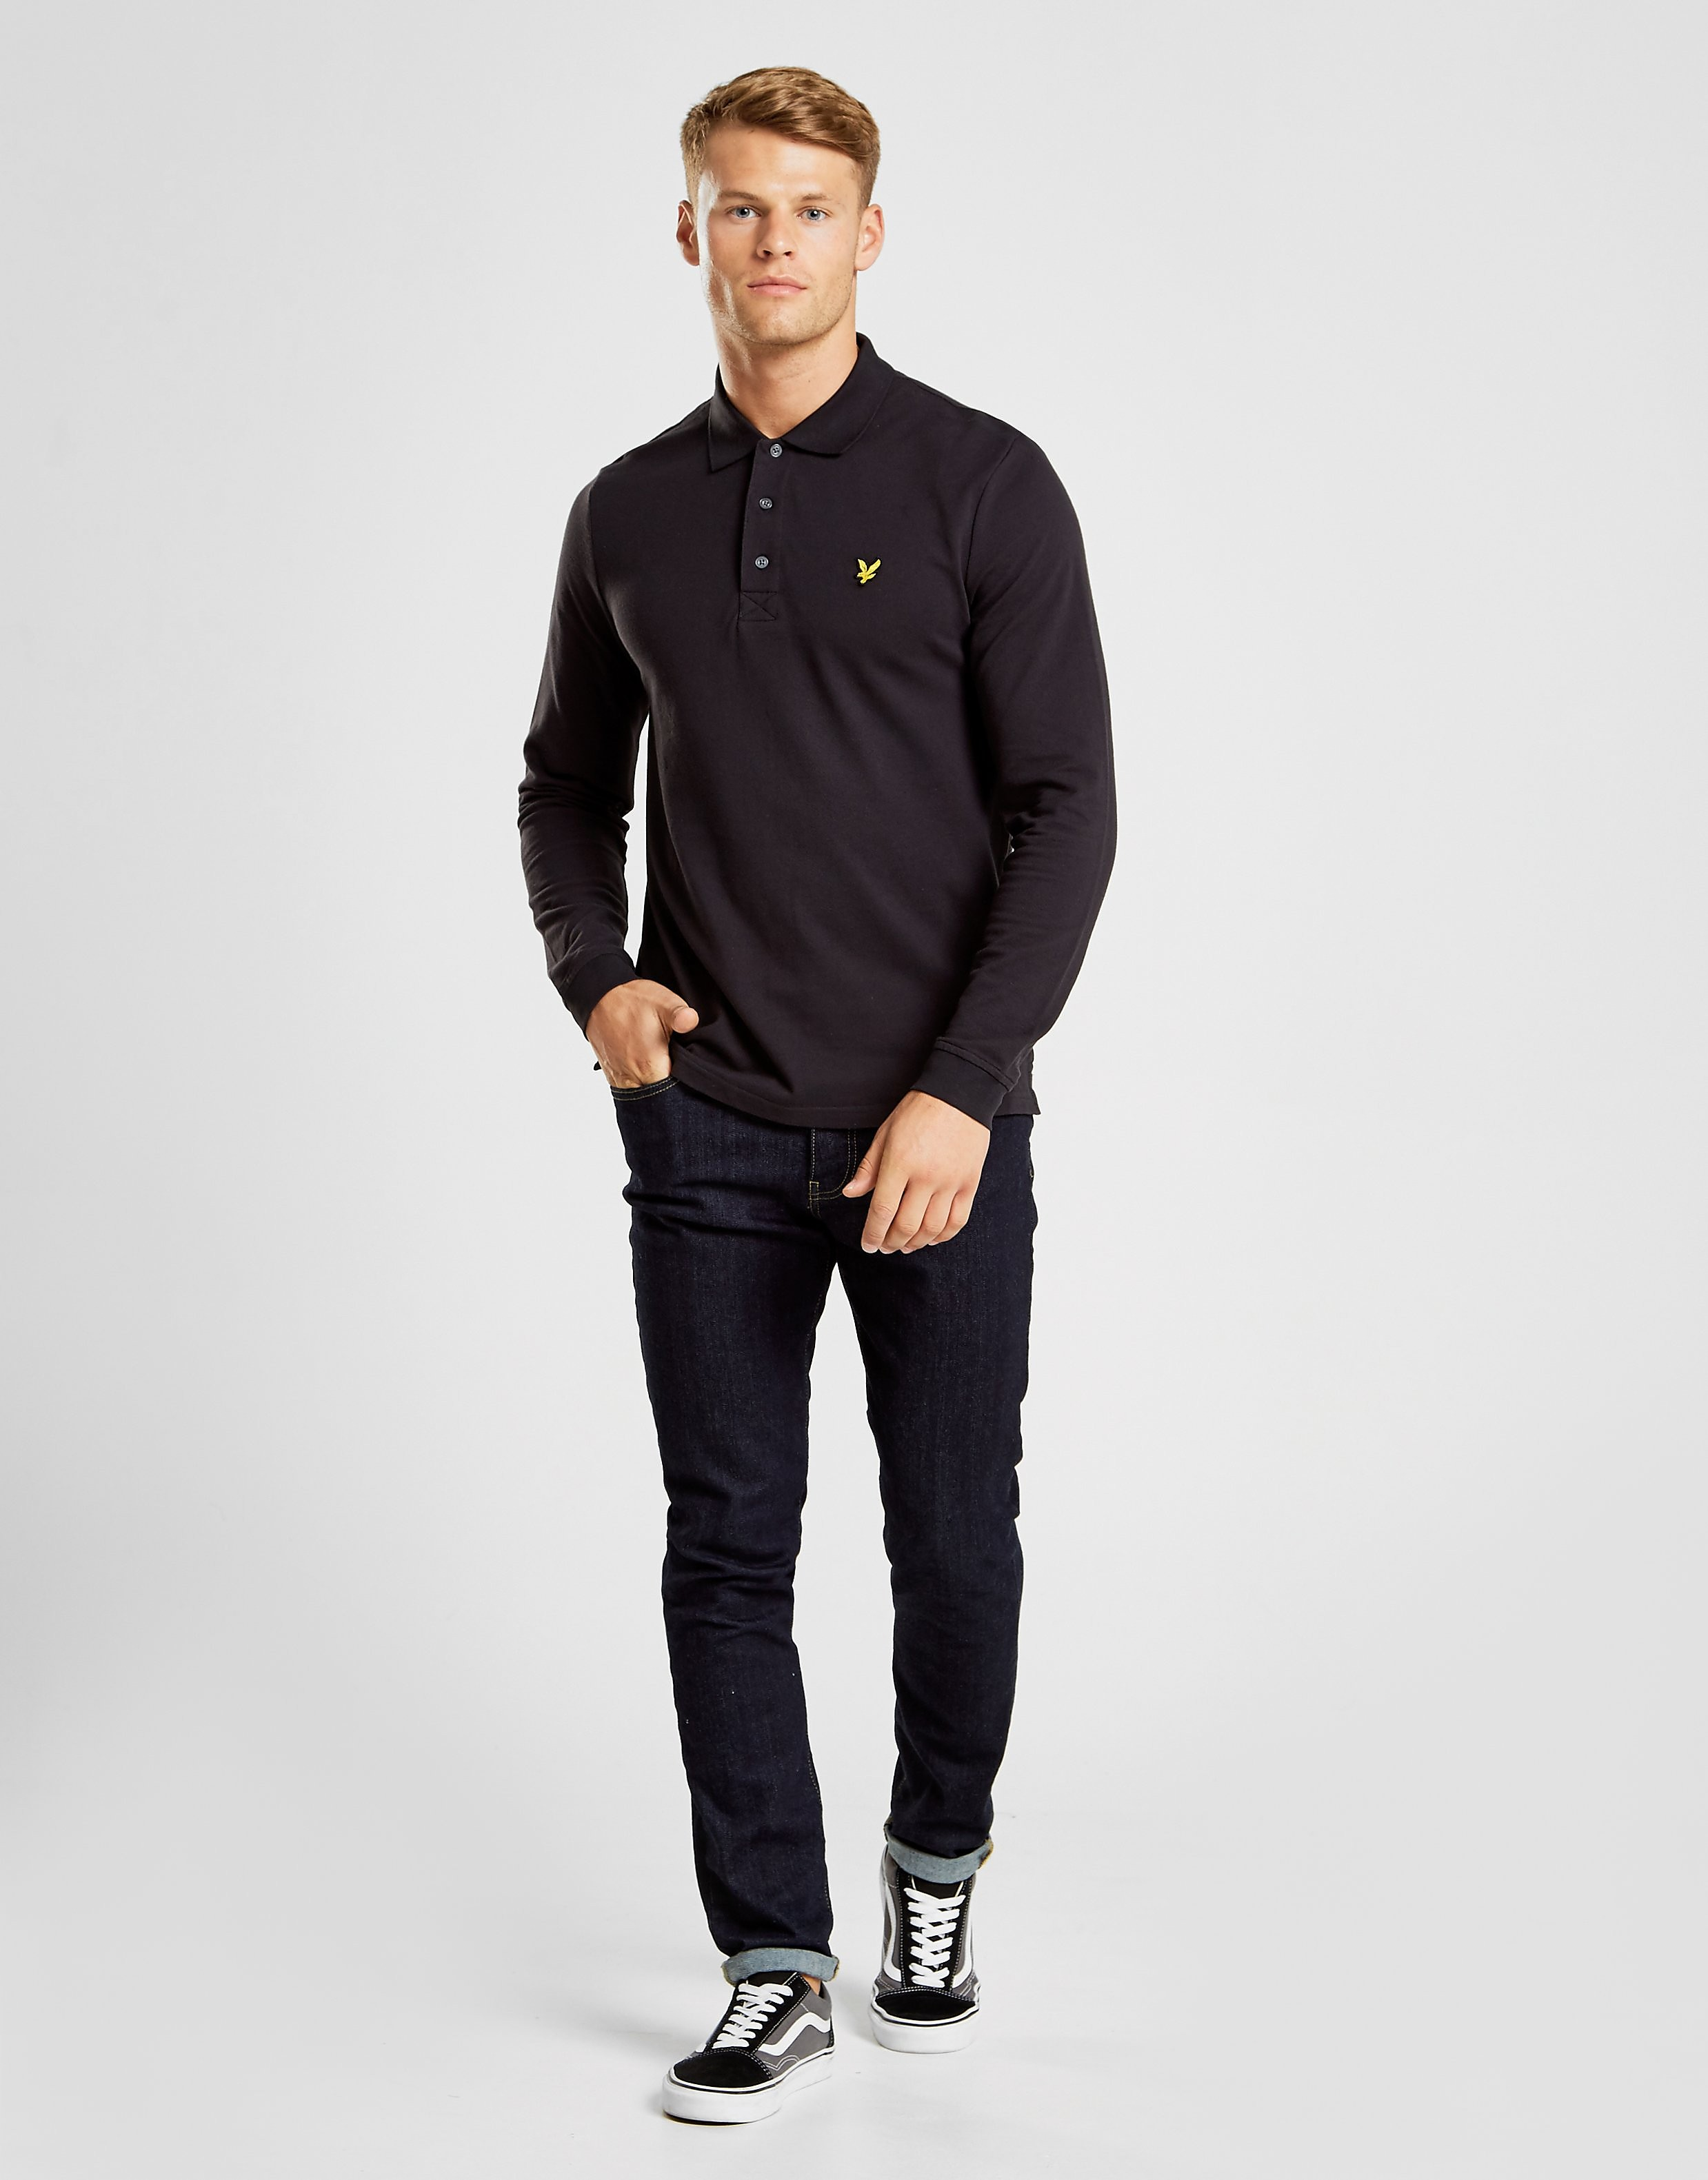 Lyle & Scott Long Sleeve Core Polo Shirt